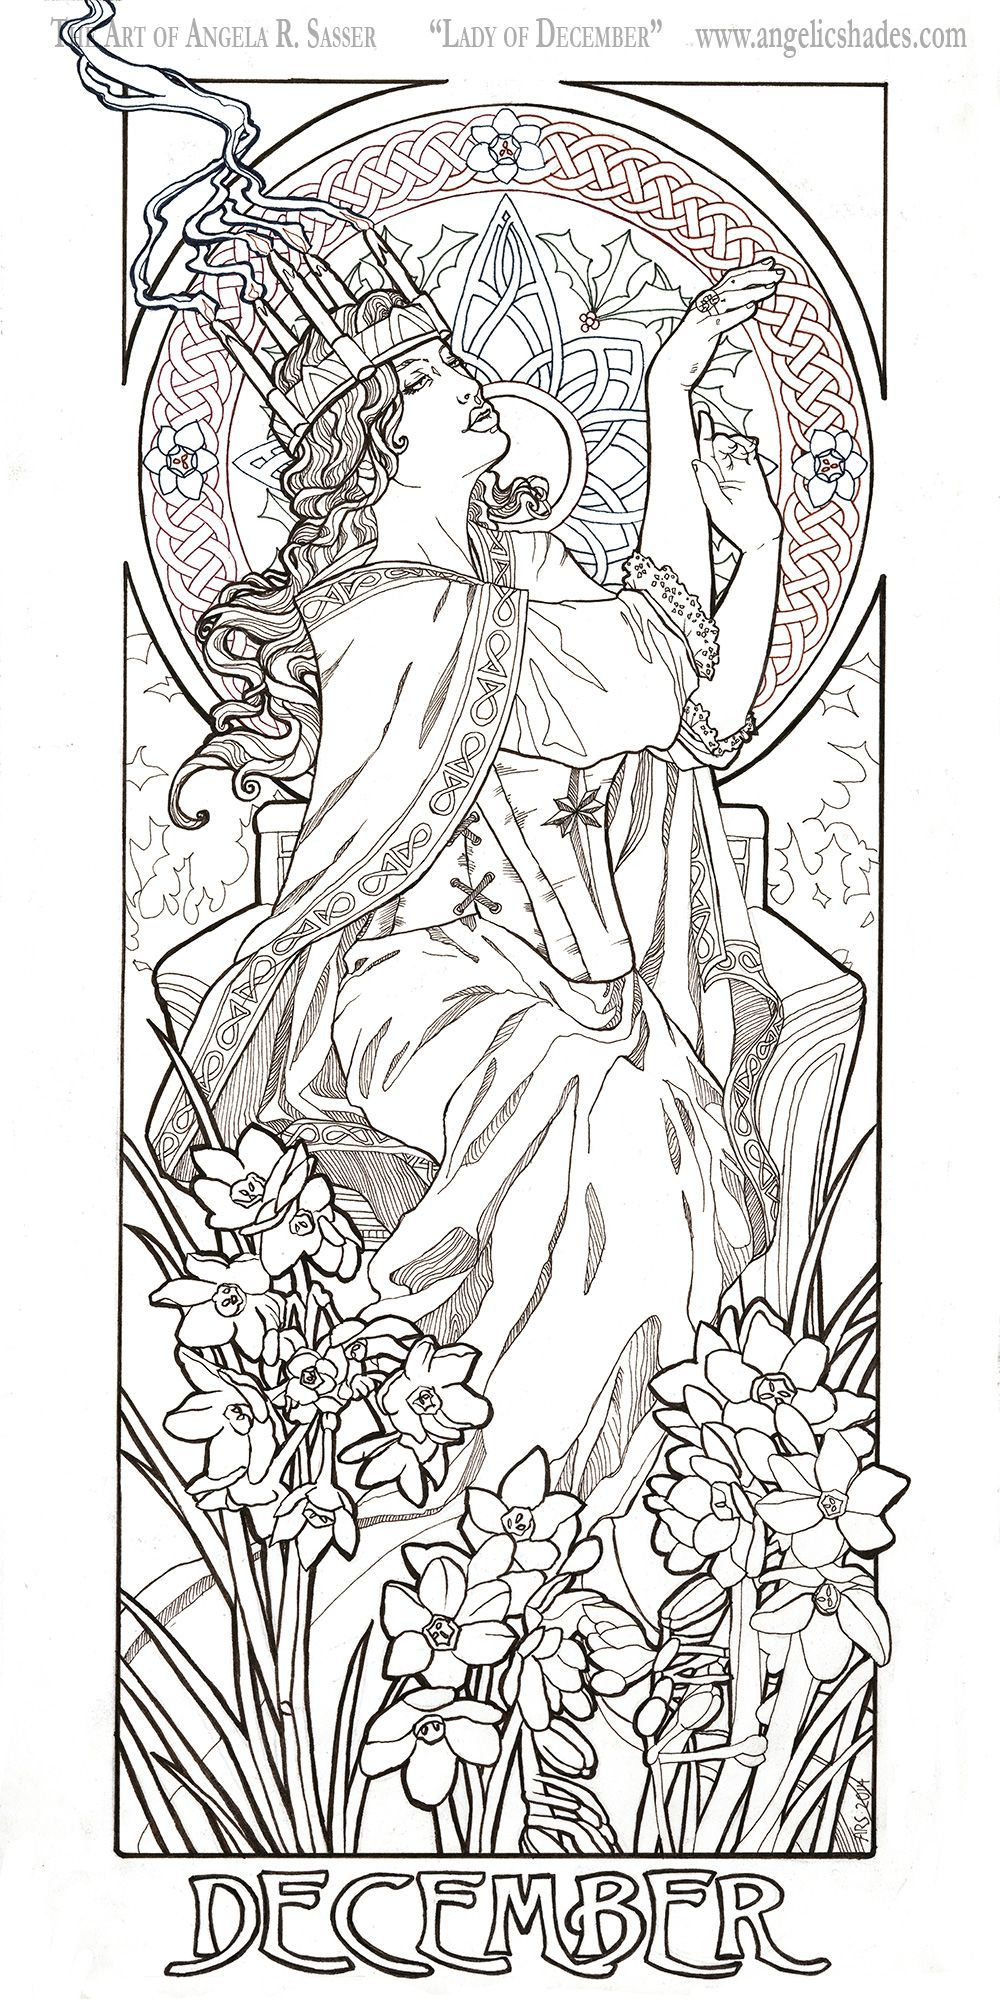 Santa Lucia Coloring Pages With Lady Of December Line Art Traditional Version By AngelaSasser